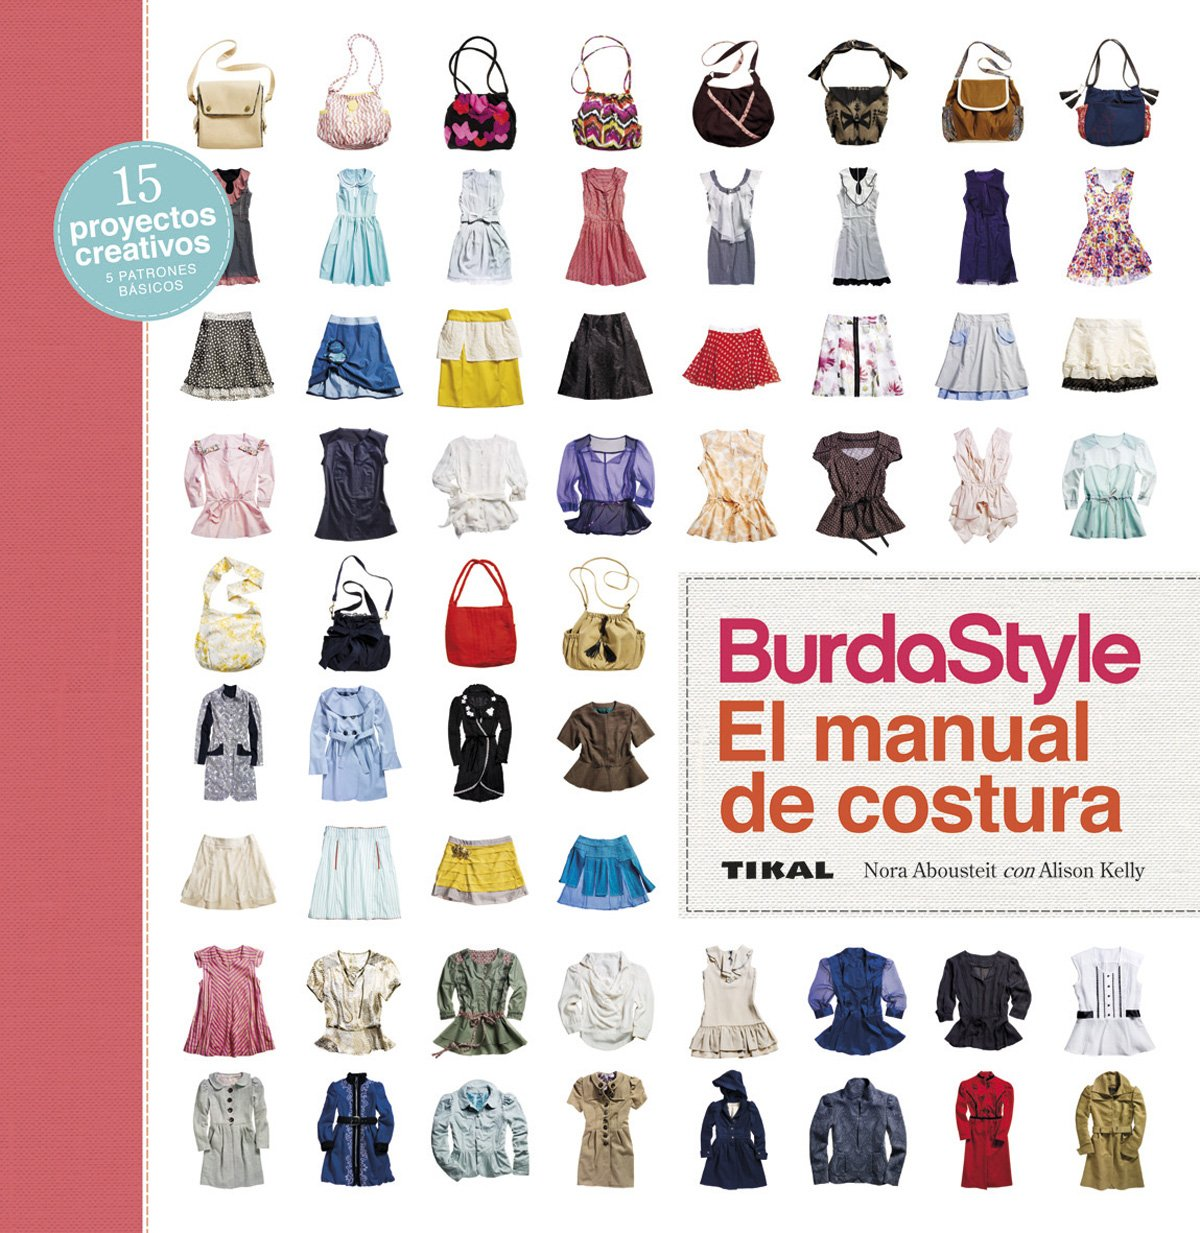 BurdaStyle. El manual de costura: Amazon.es: Tikal Ediciones S A: Libros